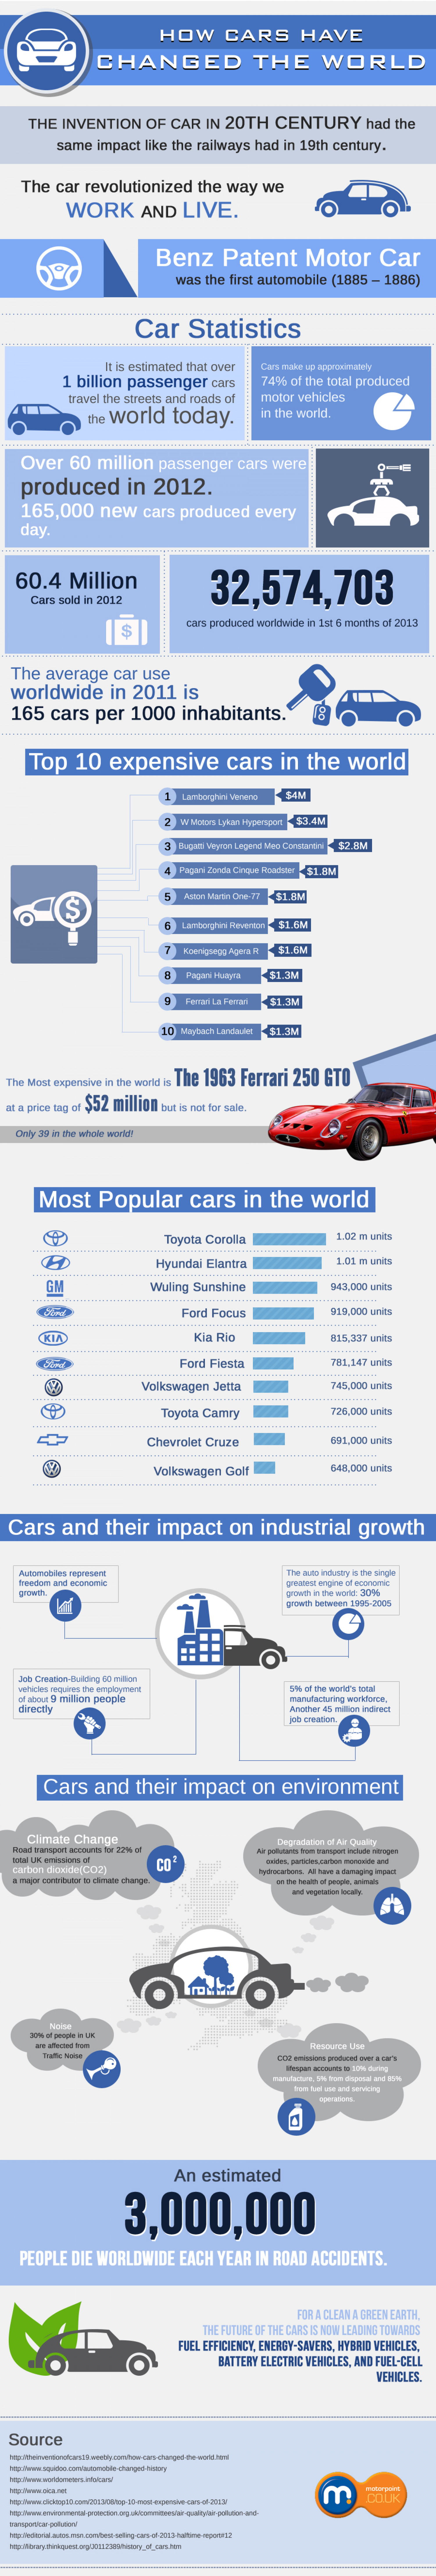 How Cars Have Changed the World Infographic